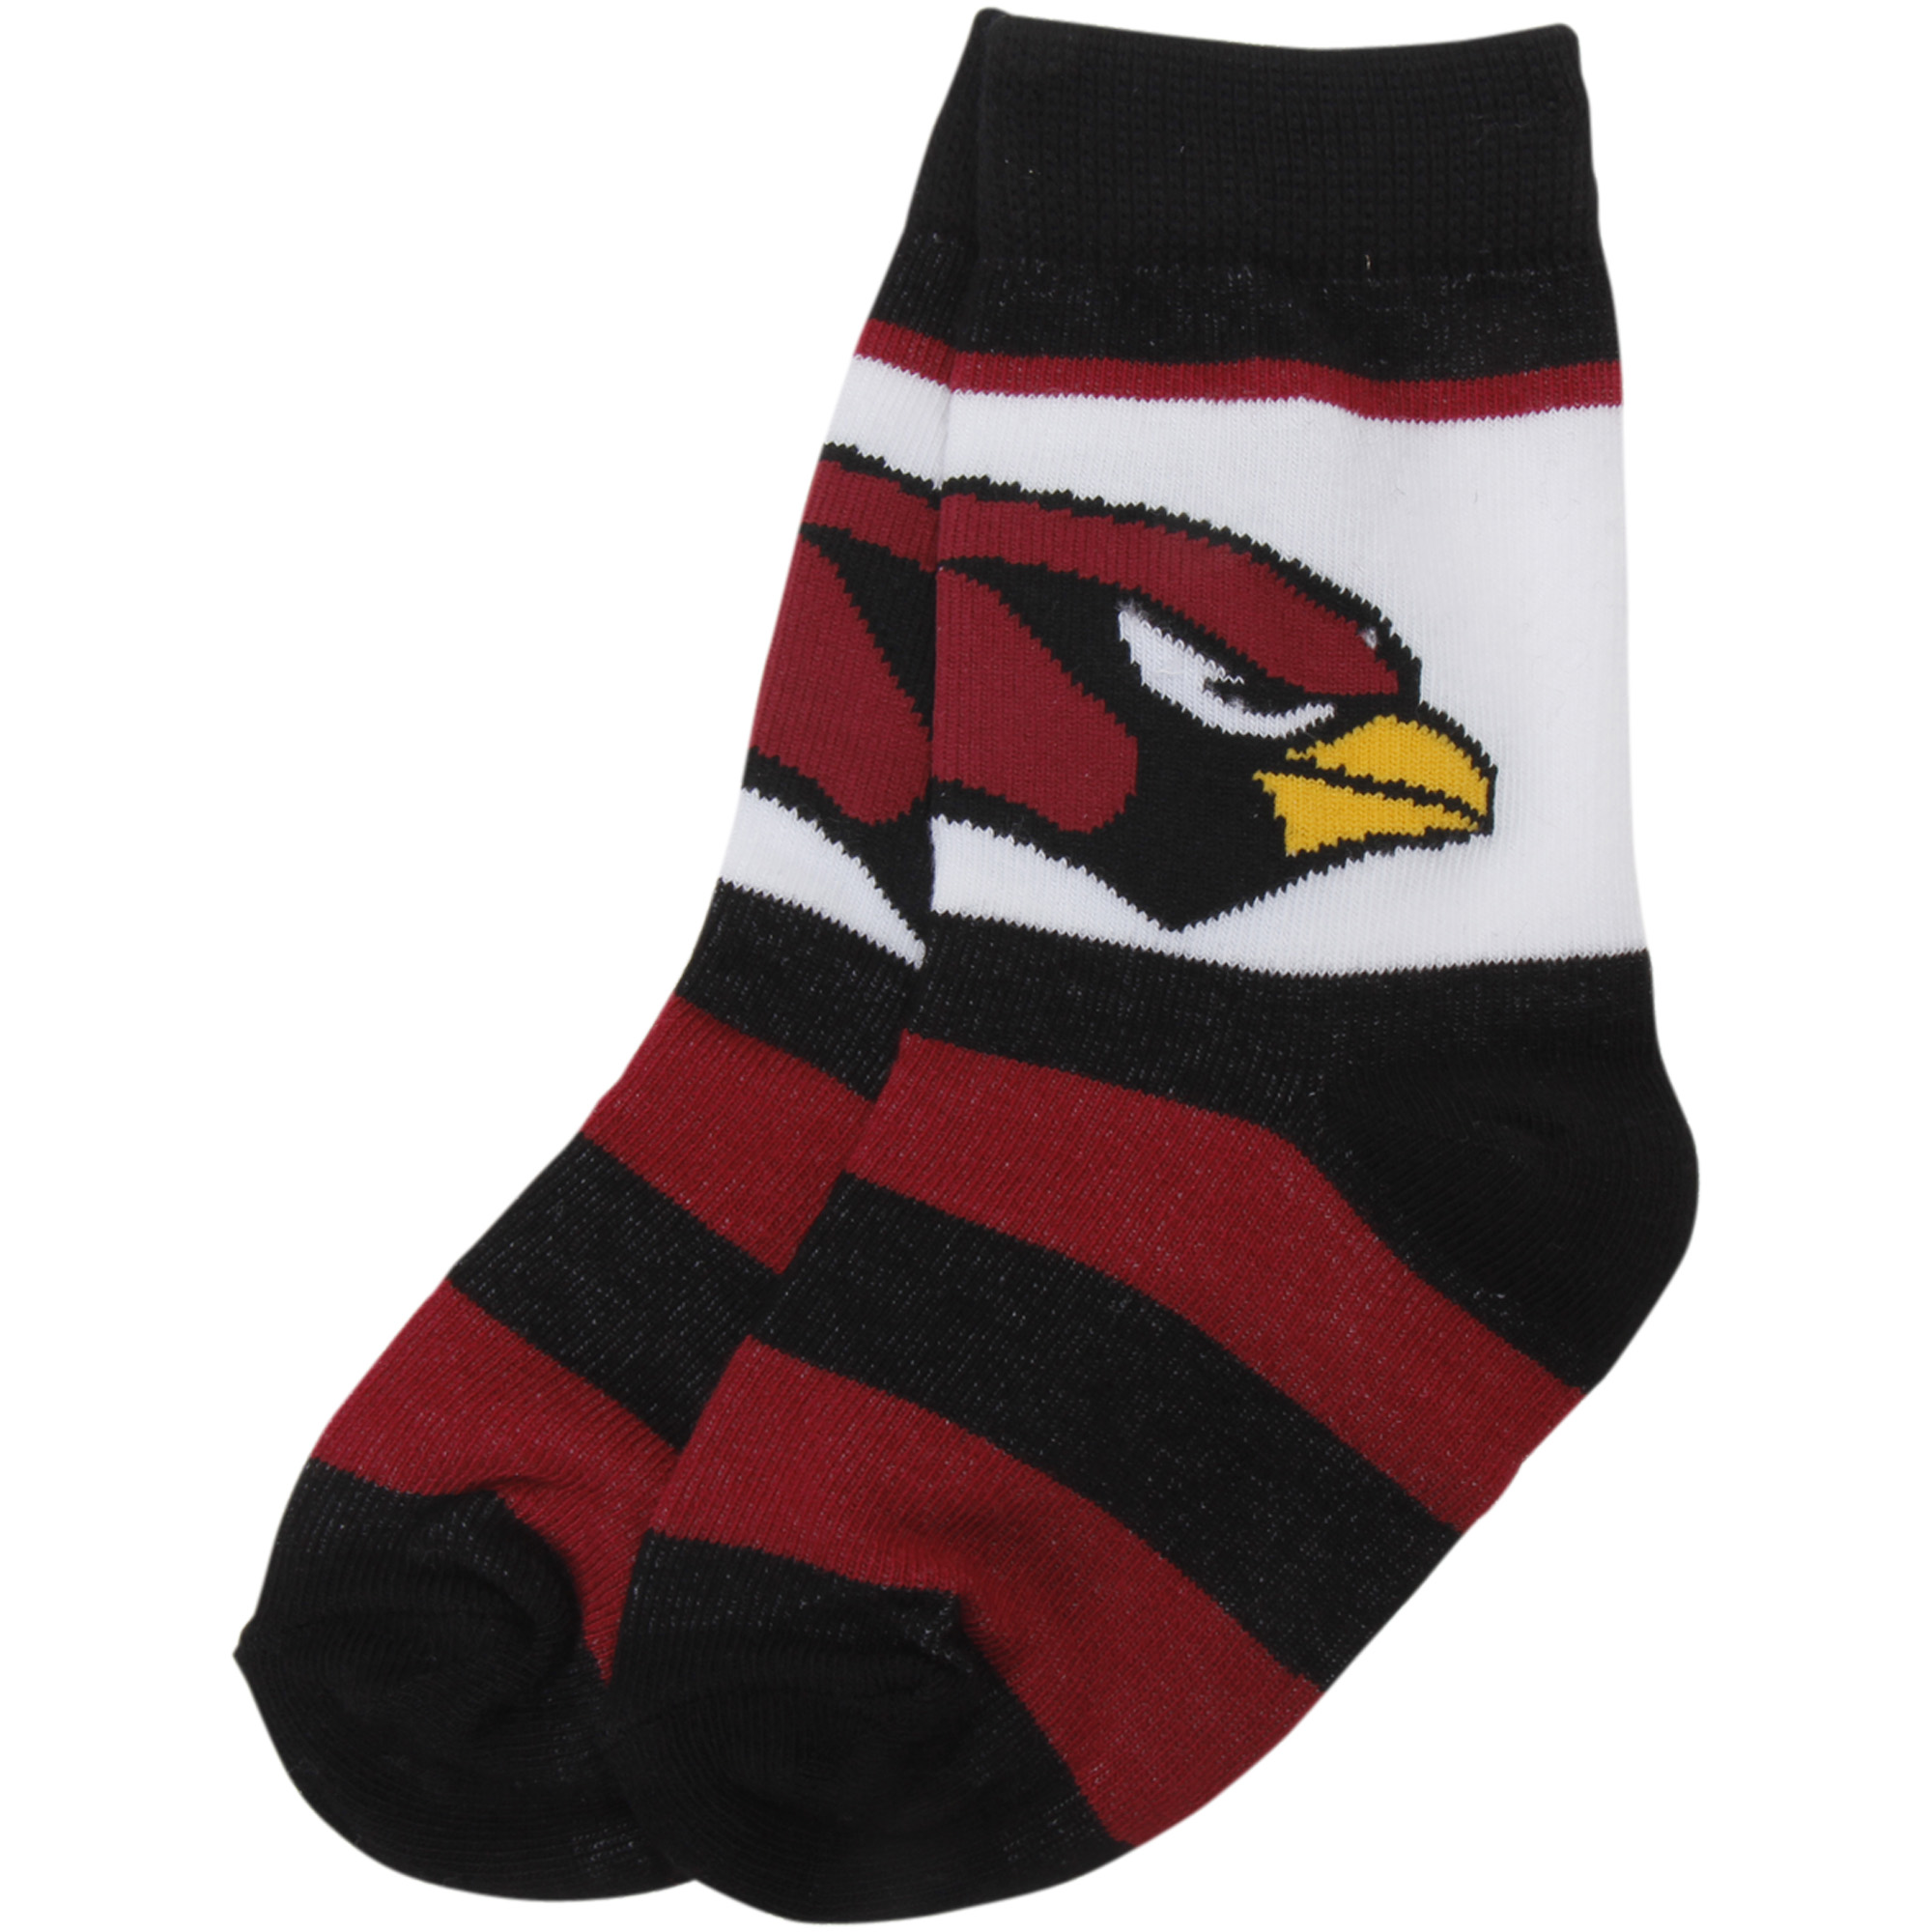 Arizona Cardinals For Bare Feet Toddler Rugby Block Socks - No Size